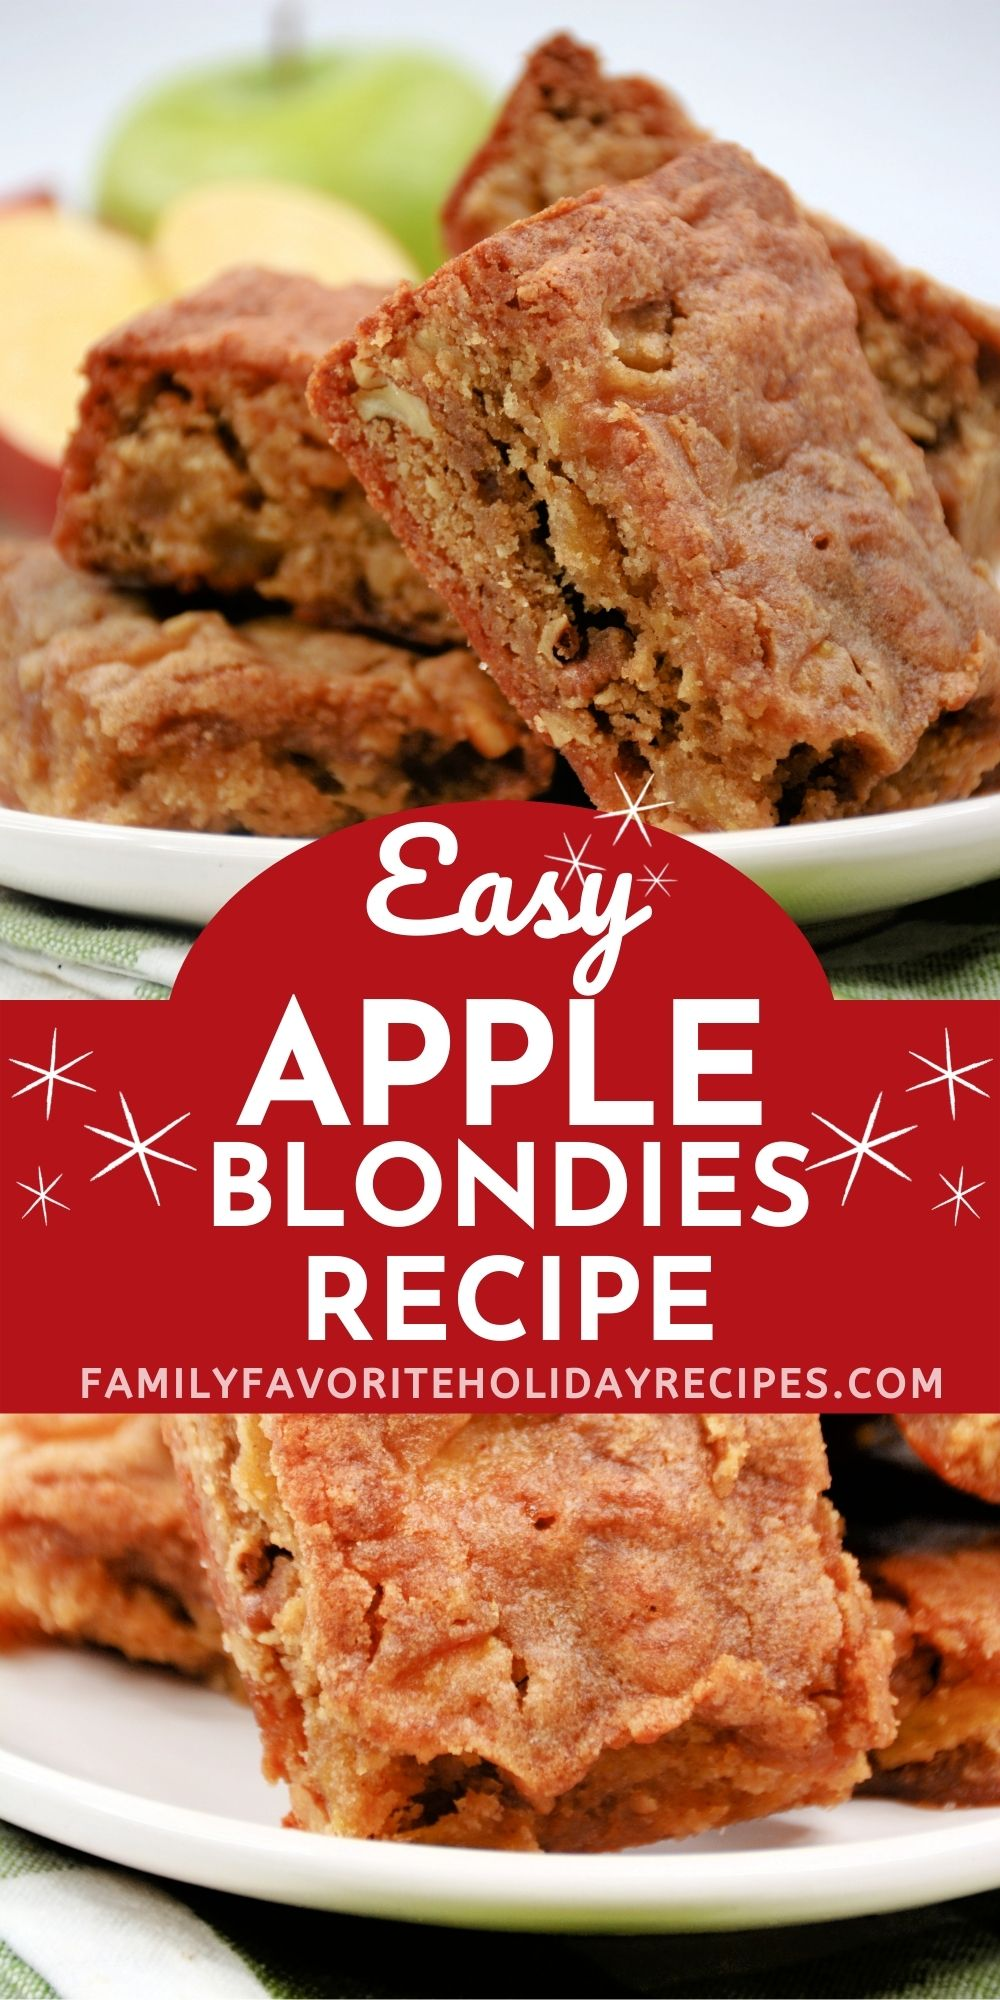 collage image featuring two photos of apple blondies. One is a close-up and the other is several on a serving plate.